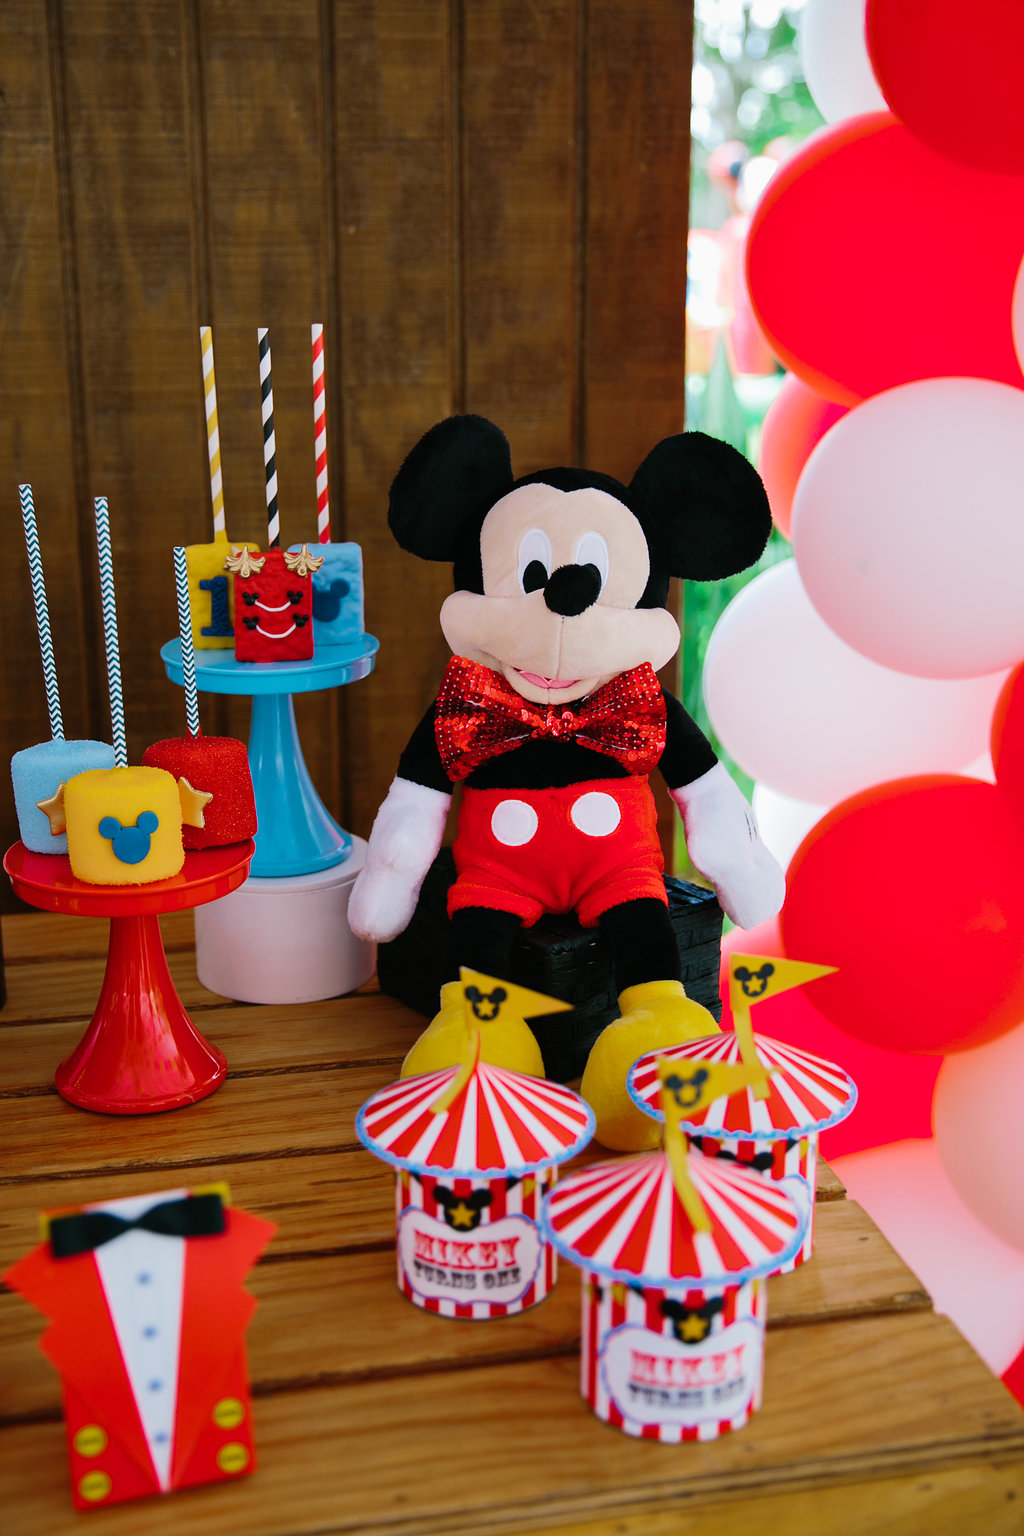 Mikey-1st-Bday-23.jpg